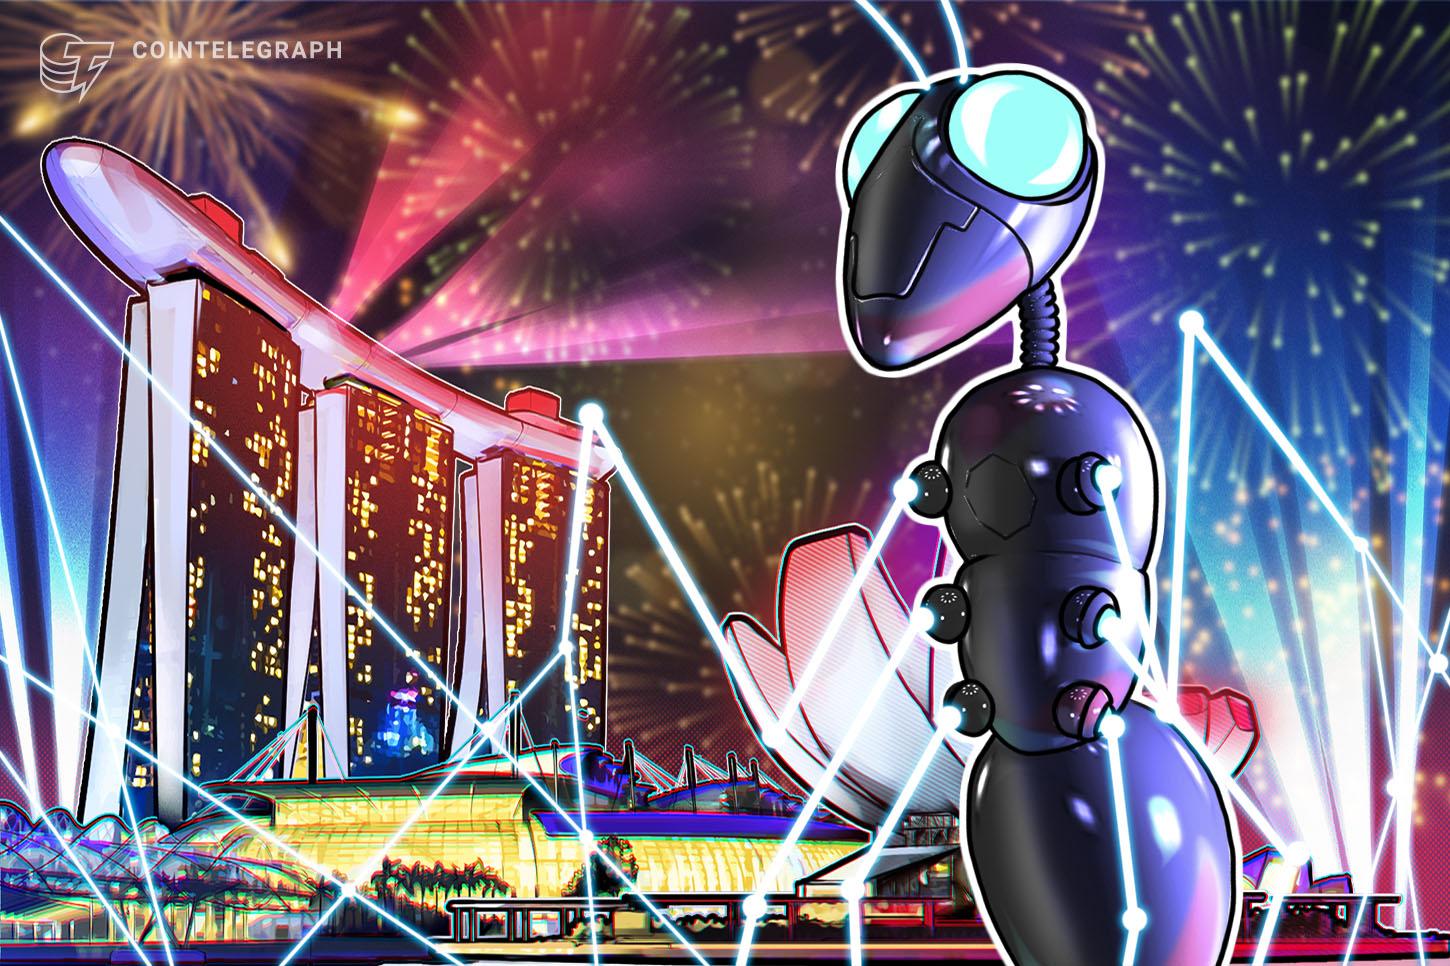 China's Top Digital Bank to Foster DLT Innovation in Singapore's Universities